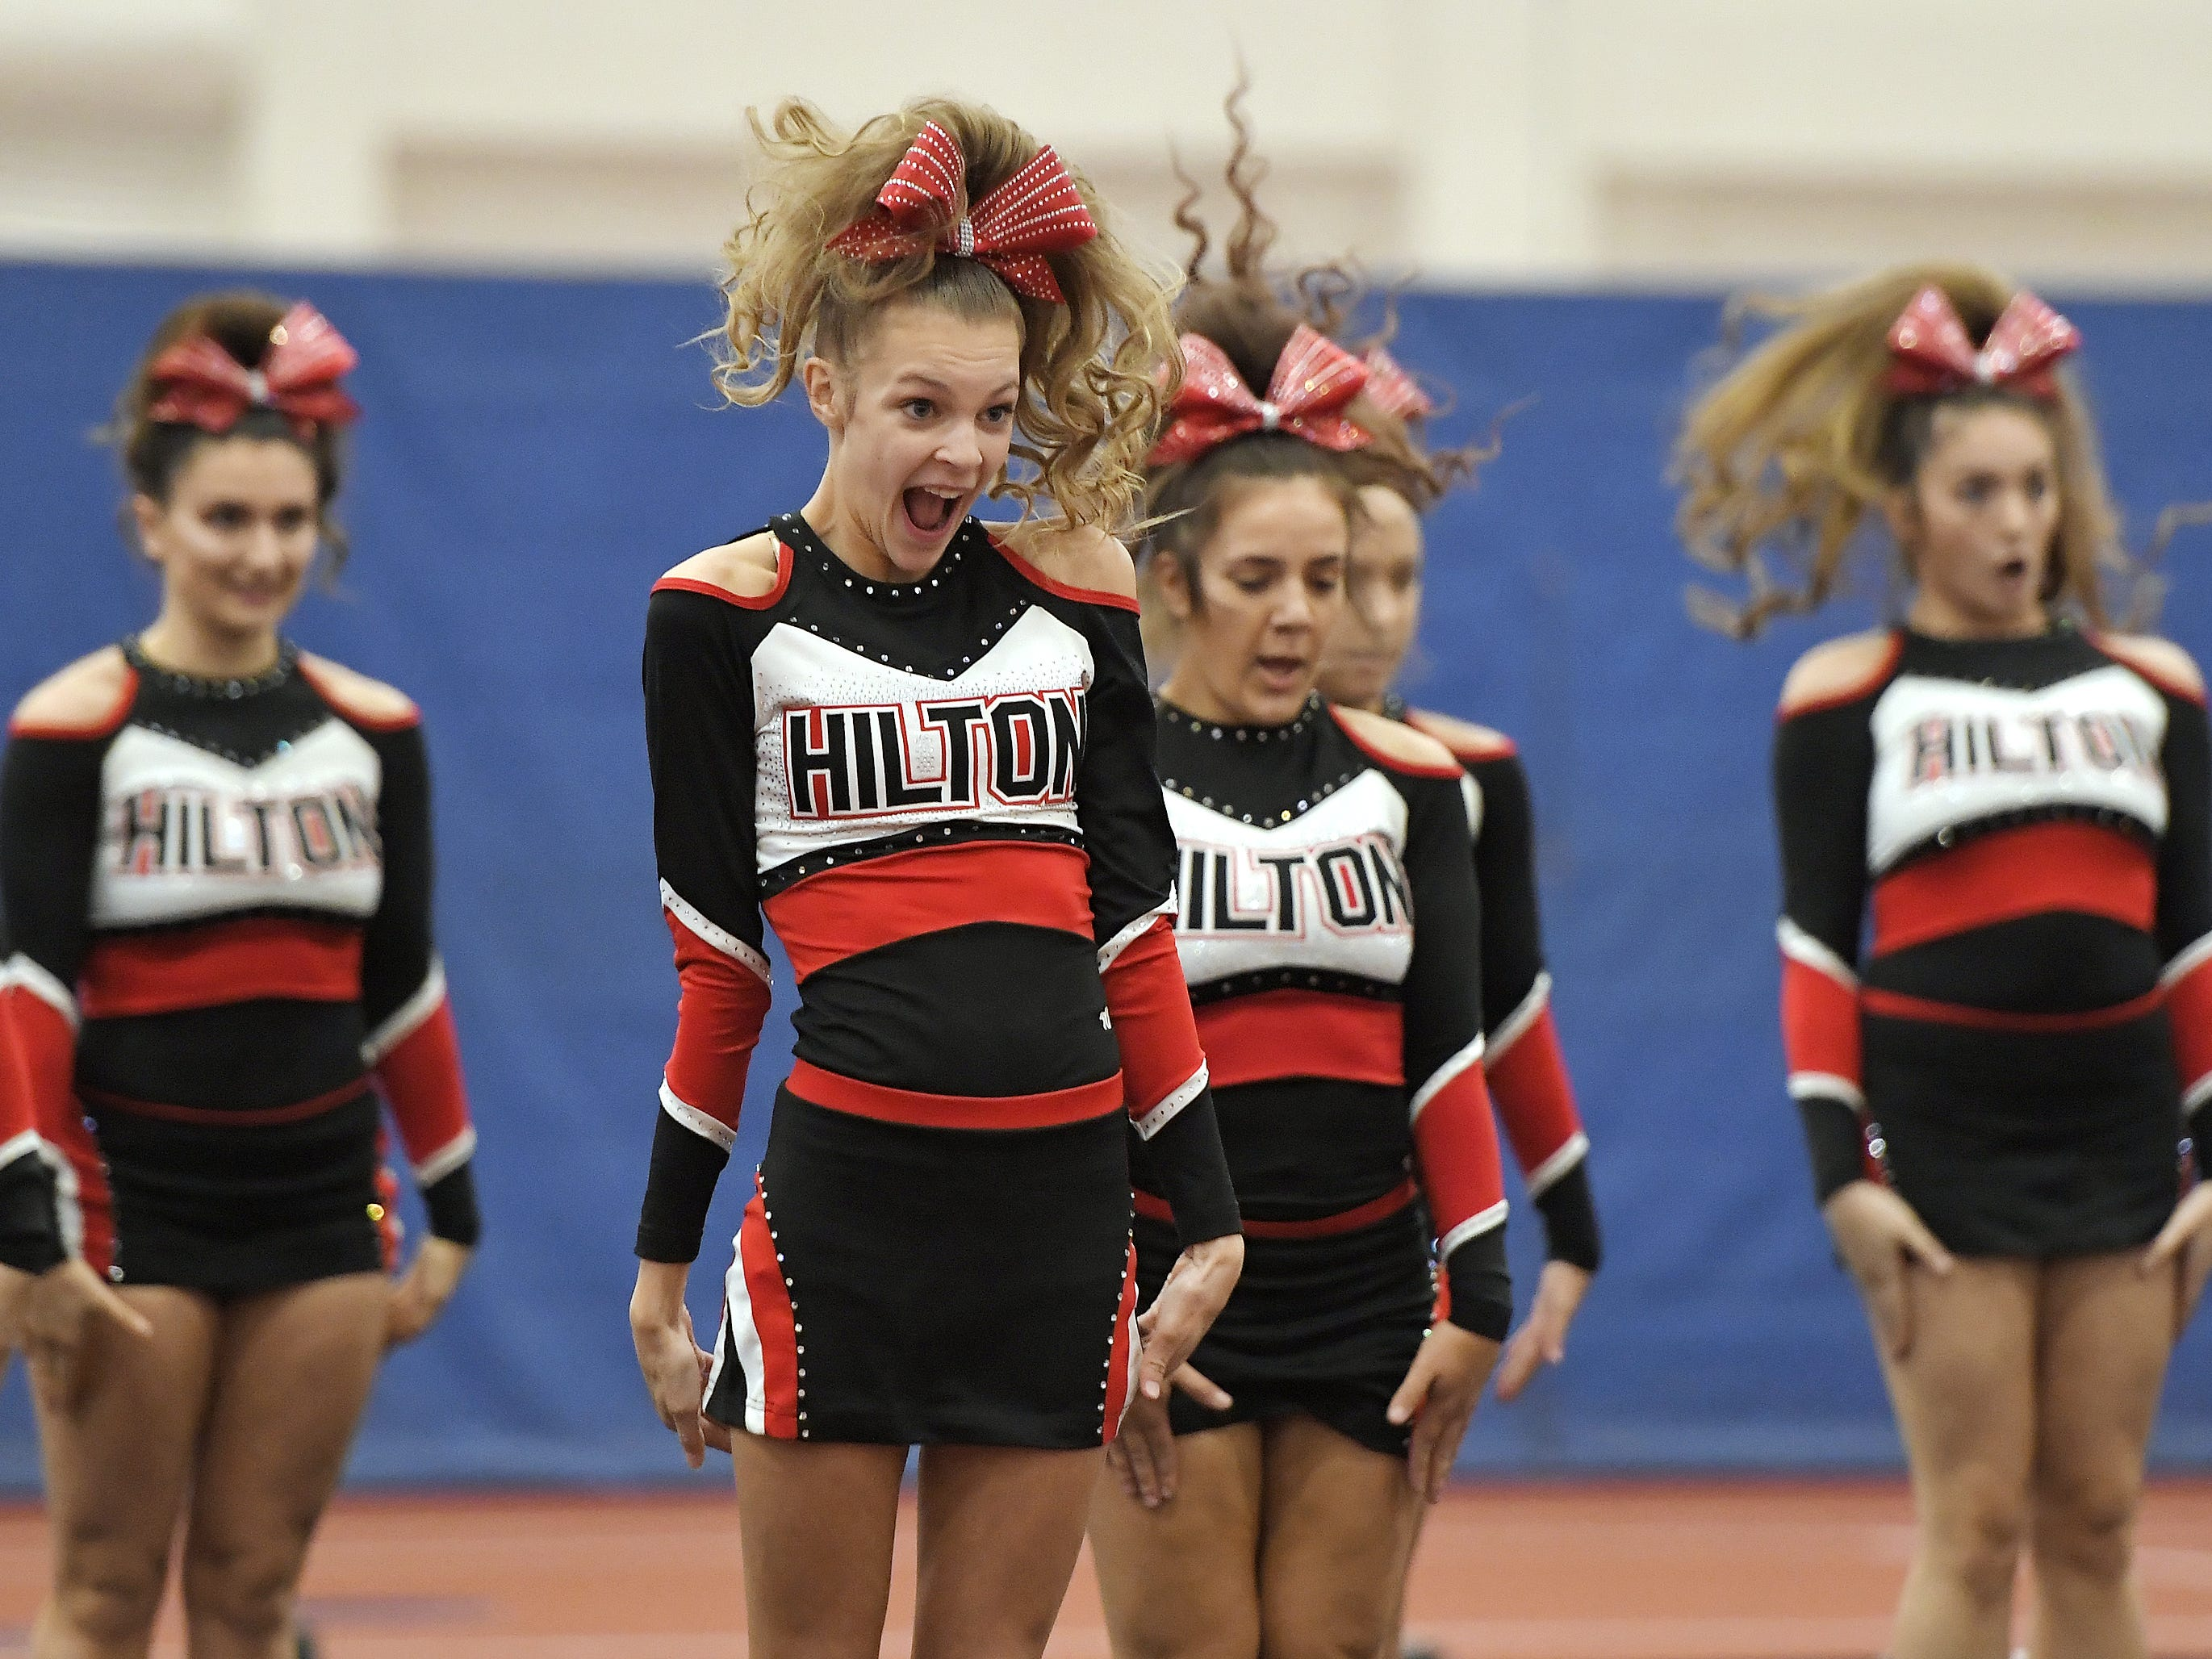 Hilton cheerleaders perform their routine during the Section V Fall Cheerleading Championships at RIT, Saturday, Oct. 27, 2018.